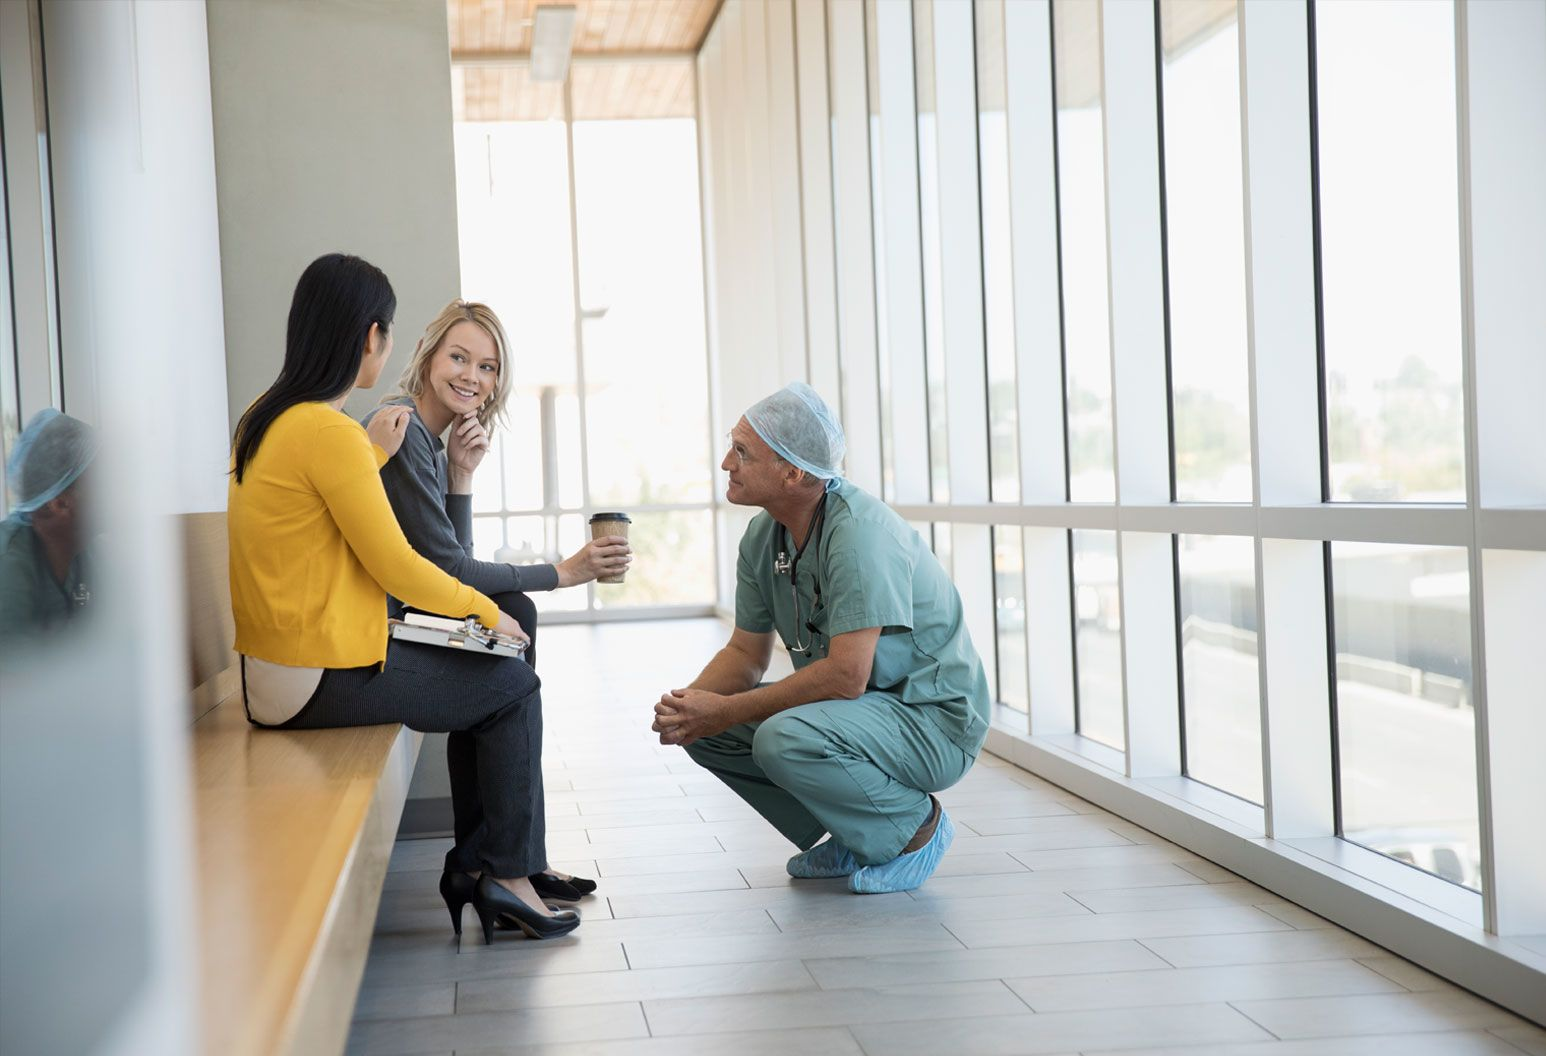 Surgeon talks to two women in waiting area of hospital.